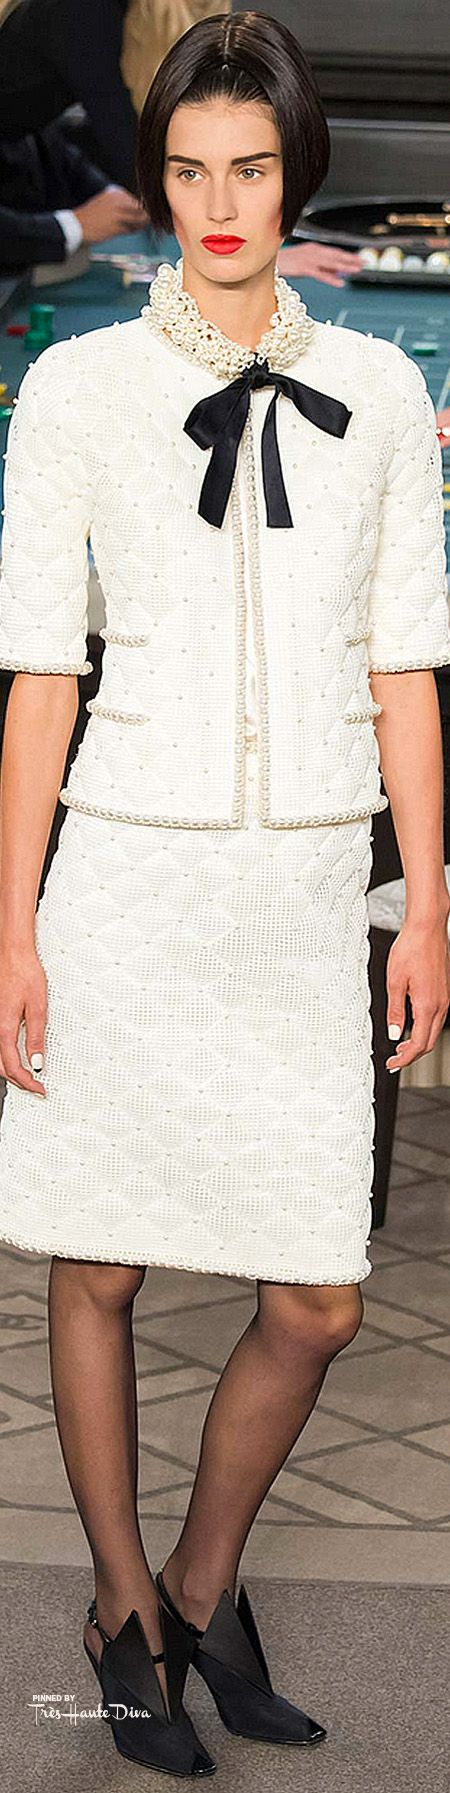 Chanel ~ Fall Ivory Short Sleeve Knit Suit 2015